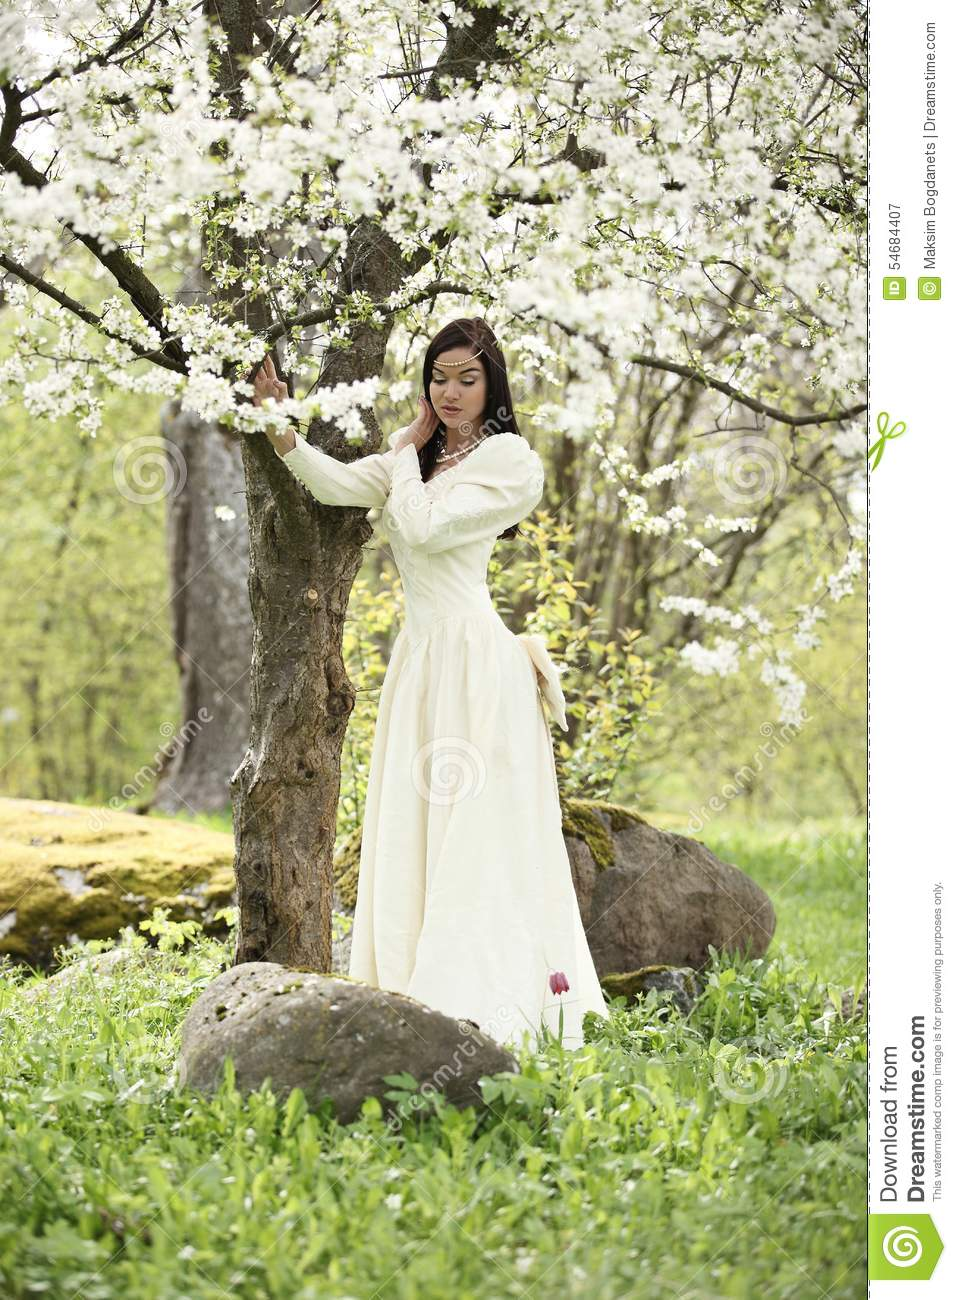 Bride wedding dress in forest vintage white tree stock for Forest wedding dress vintage